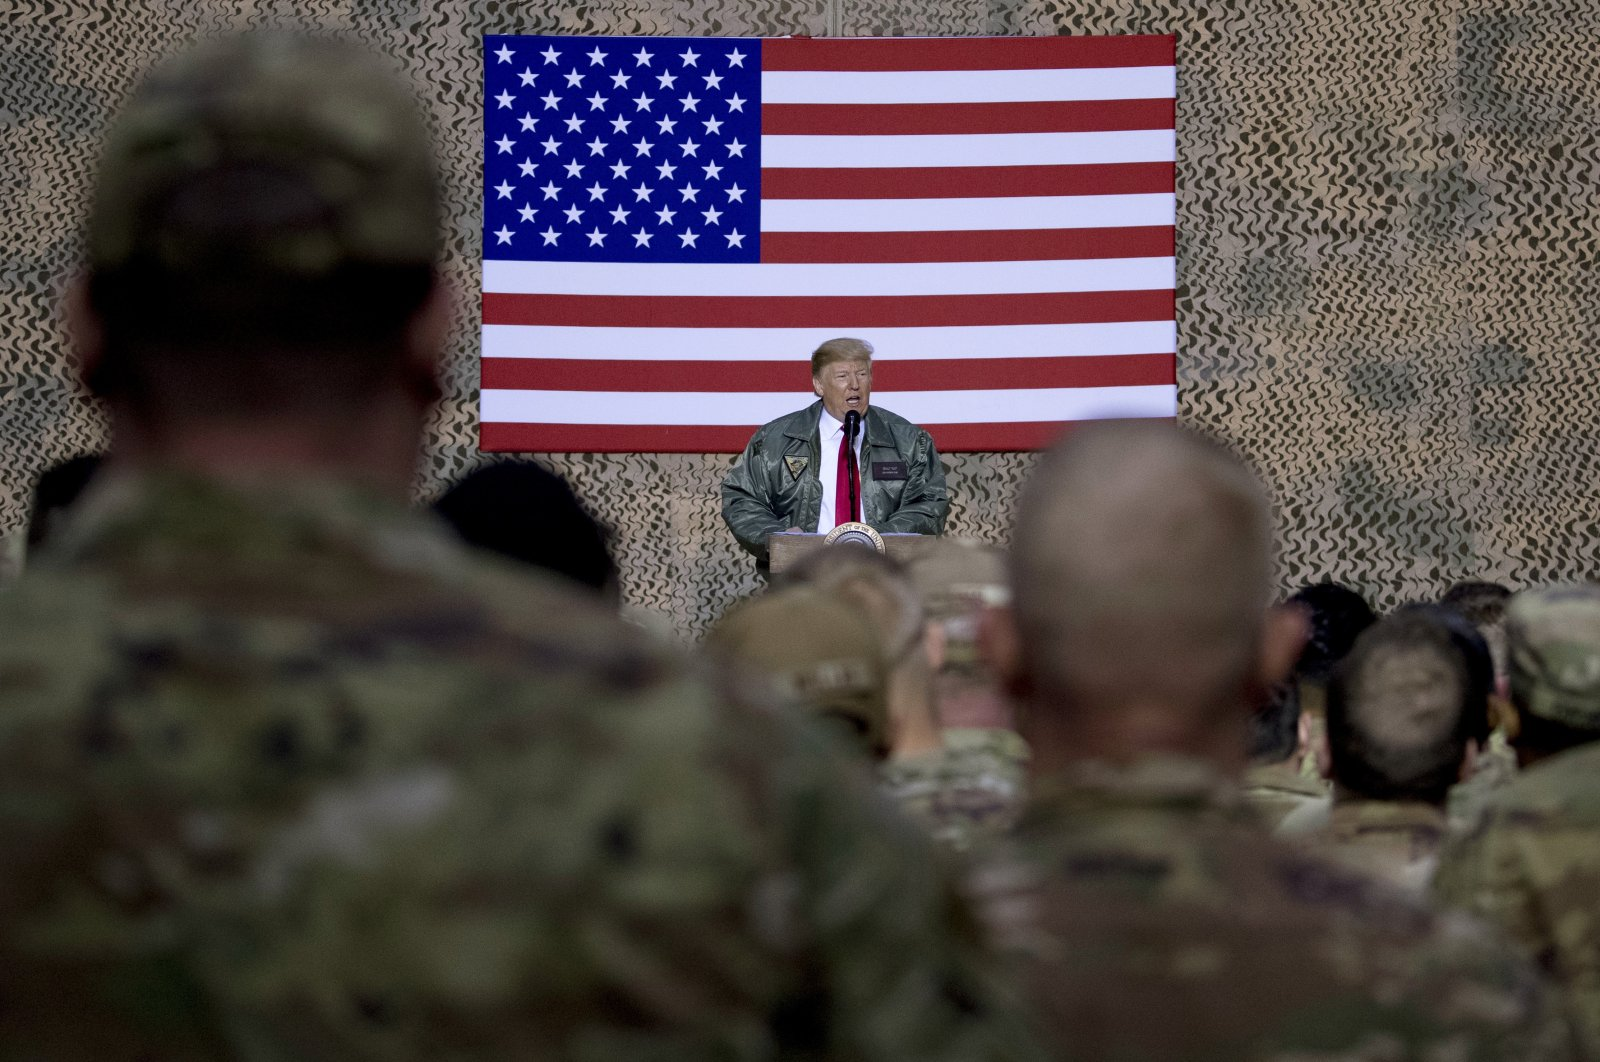 U.S. President Donald Trump speaks to members of the military at a hangar rally at al-Asad Air Base, Iraq, Dec. 26, 2018. (AP Photo)